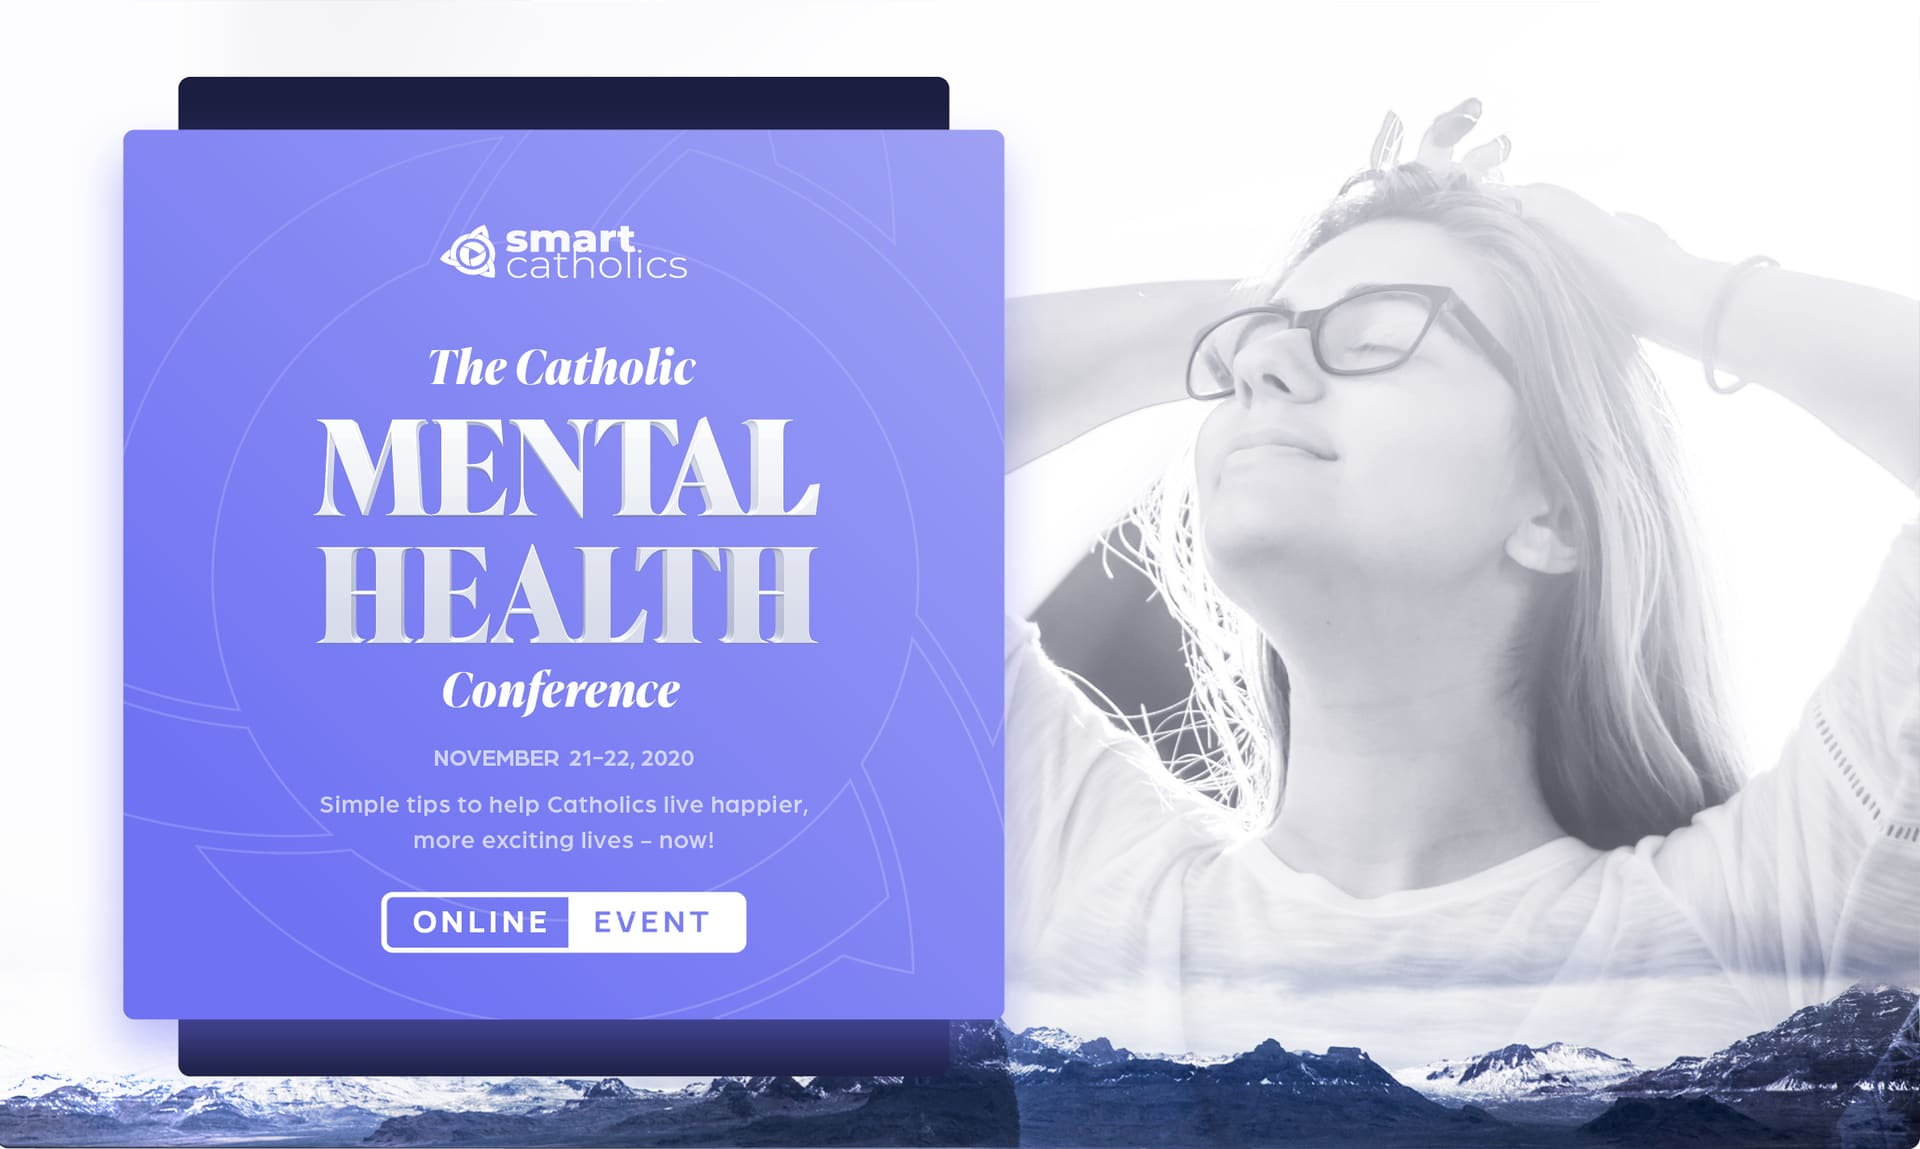 The Catholic Mental Health Conference